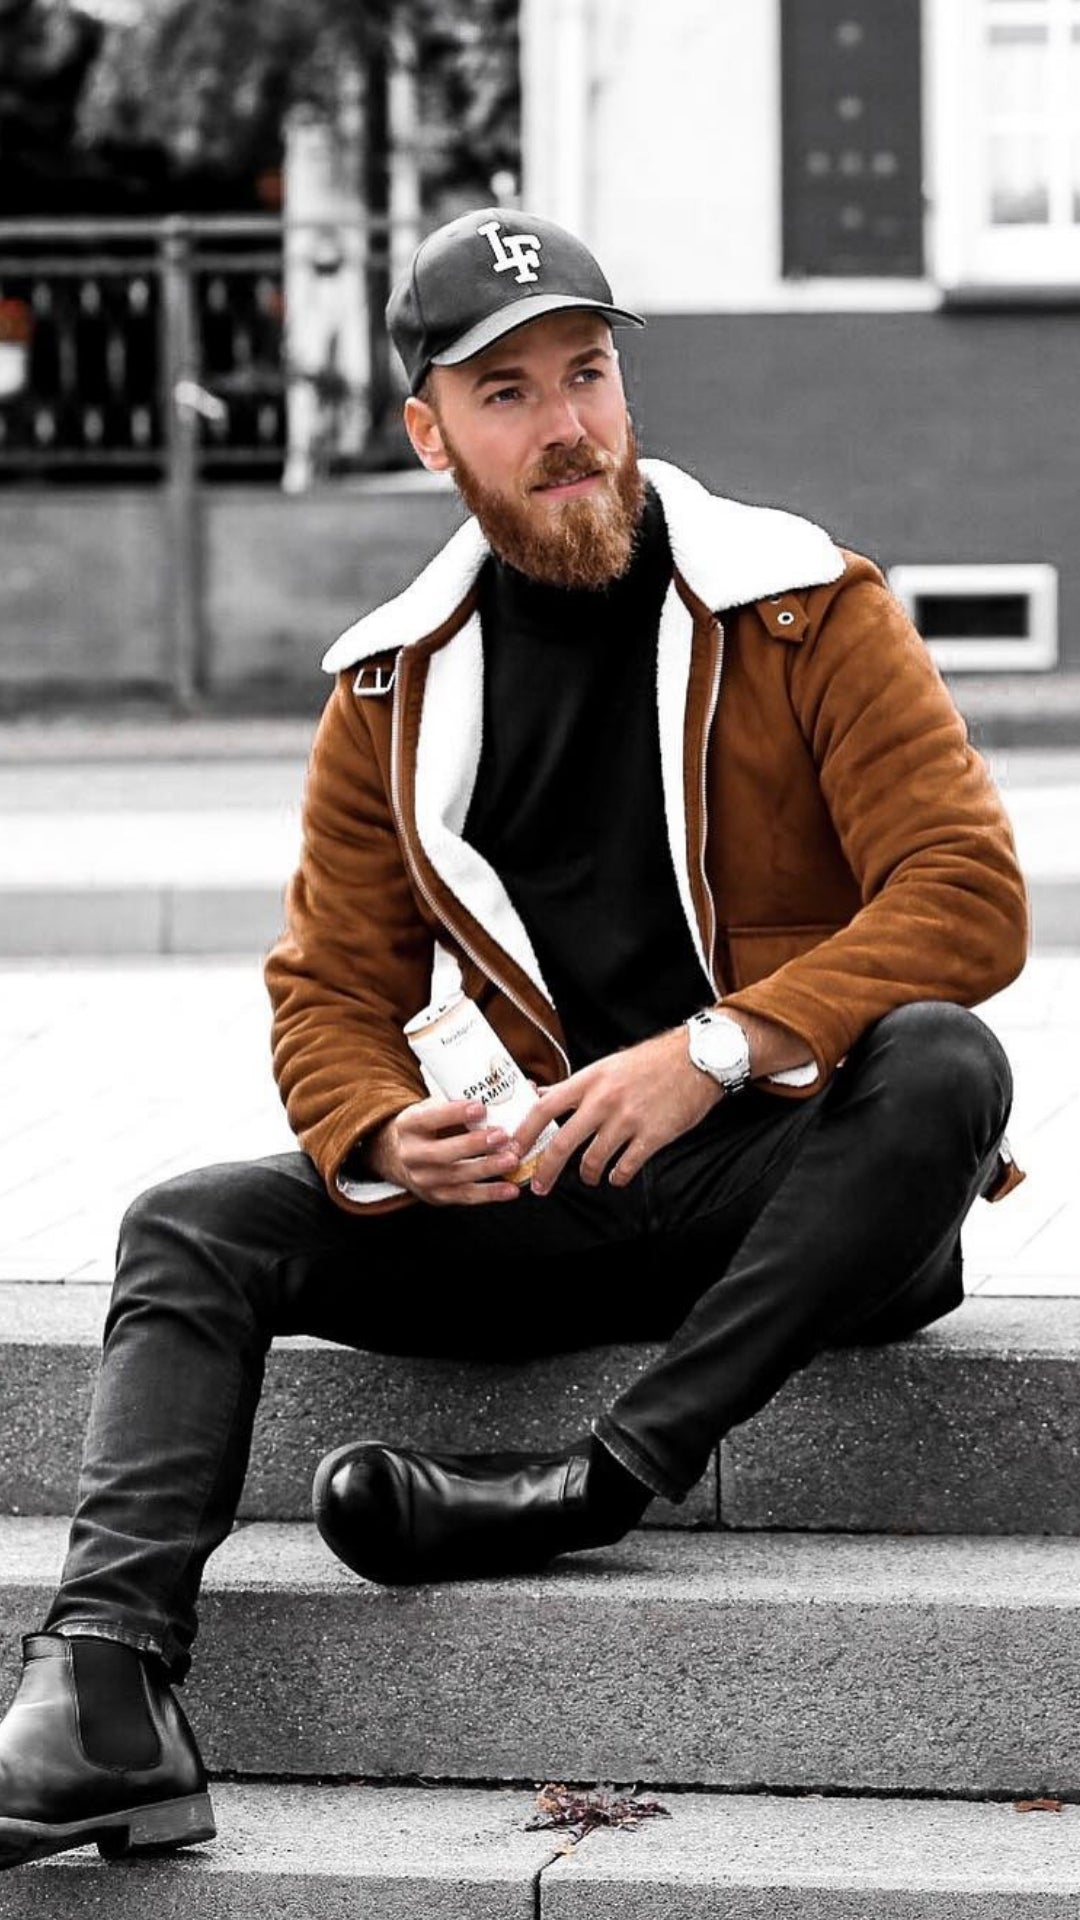 Looking for some cool street style inspo? Look no further. Follow this guy and copy how he dresses to look your best. #street #style #mens #fashion